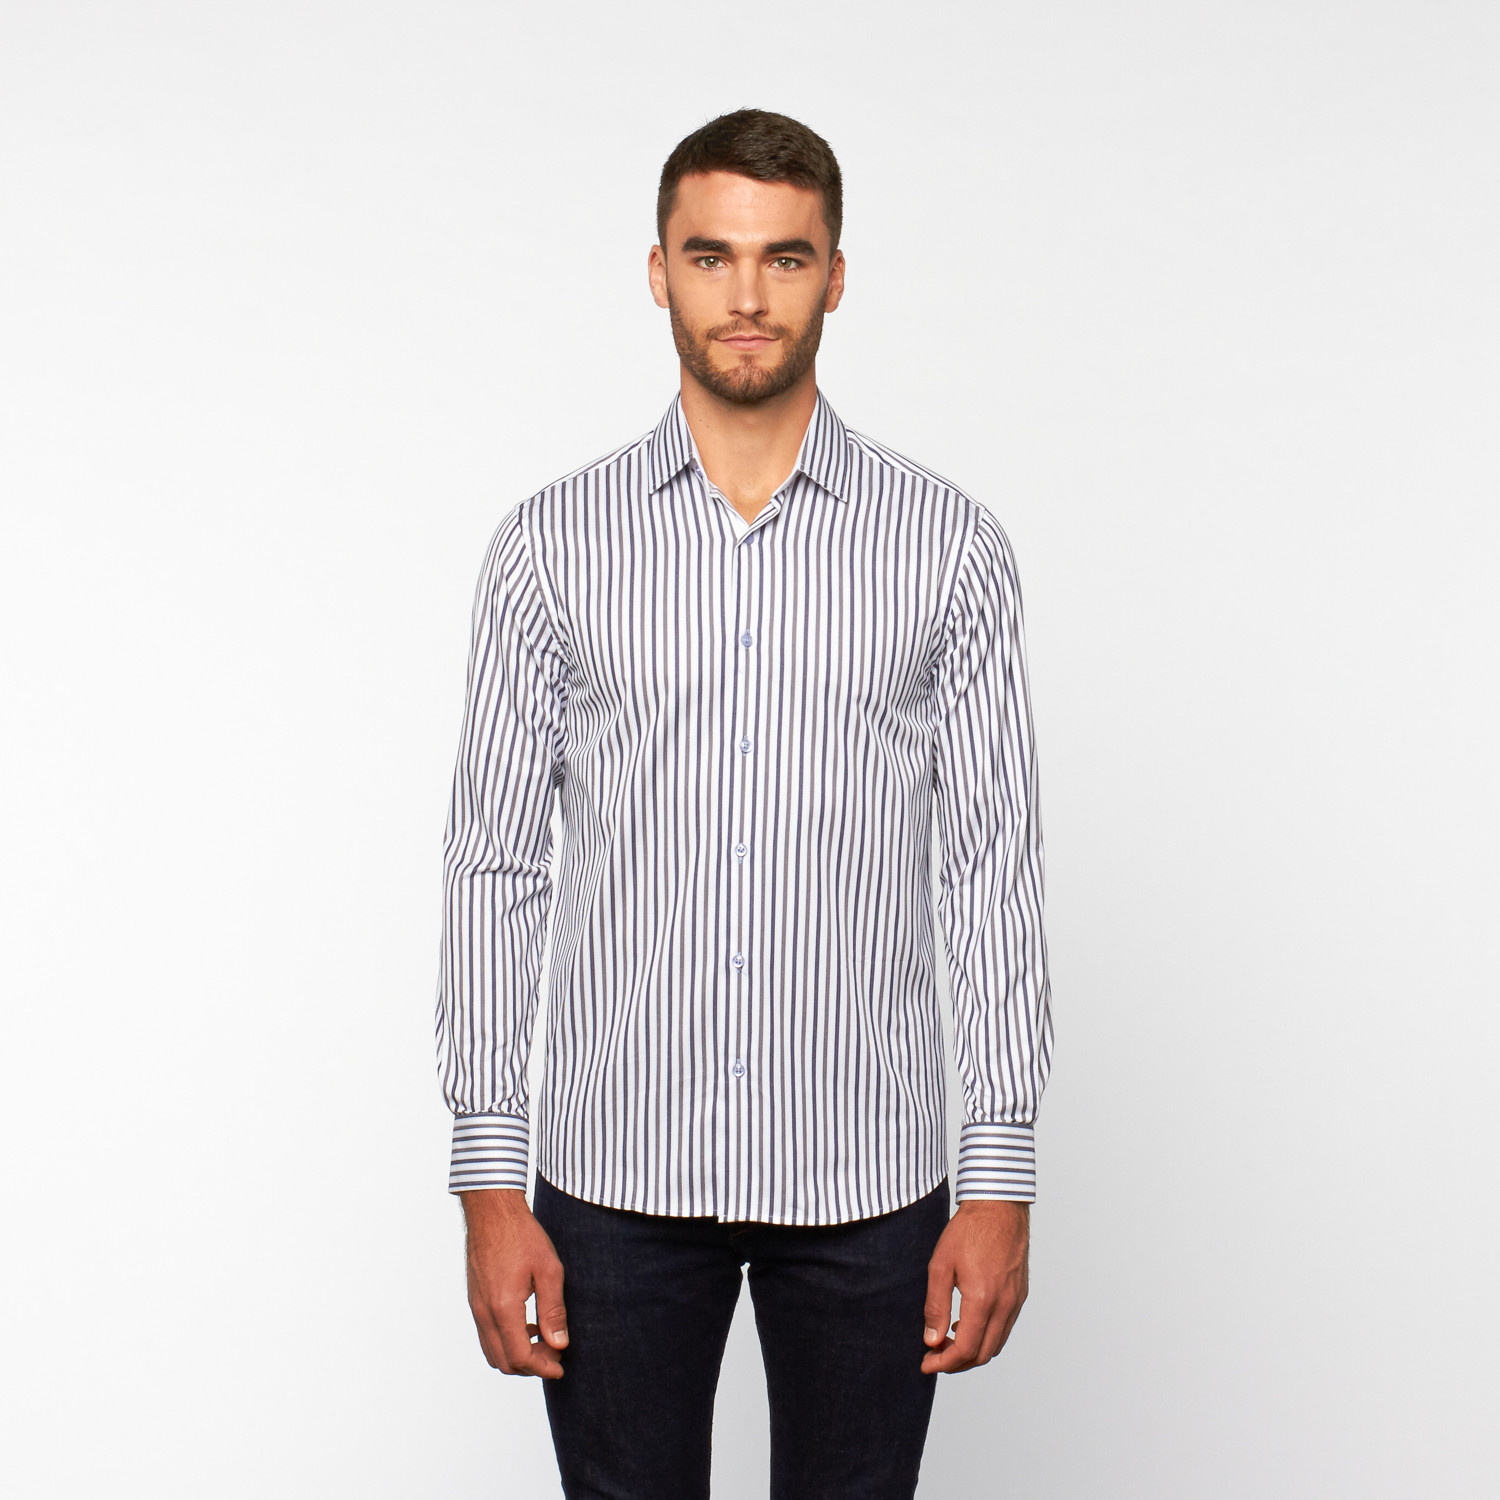 Striped Button Up Shirt Navy Grey White S Dolce